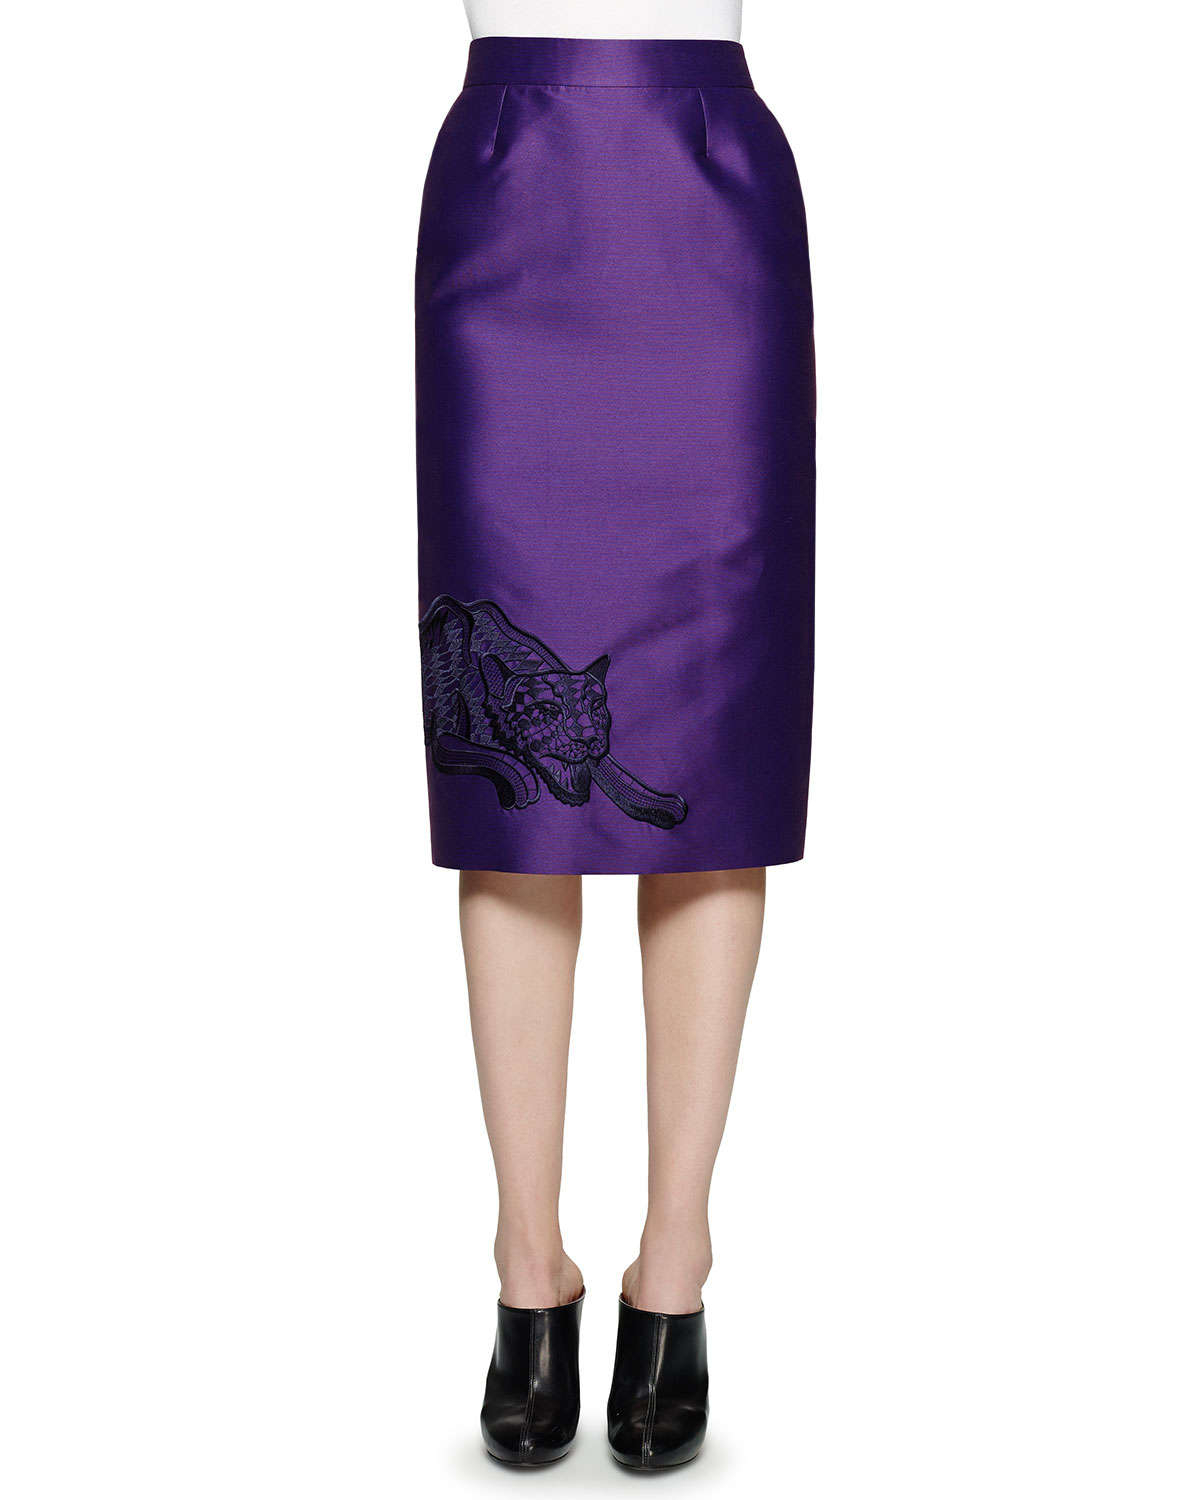 stella mccartney embroidered cat pencil skirt in purple lyst